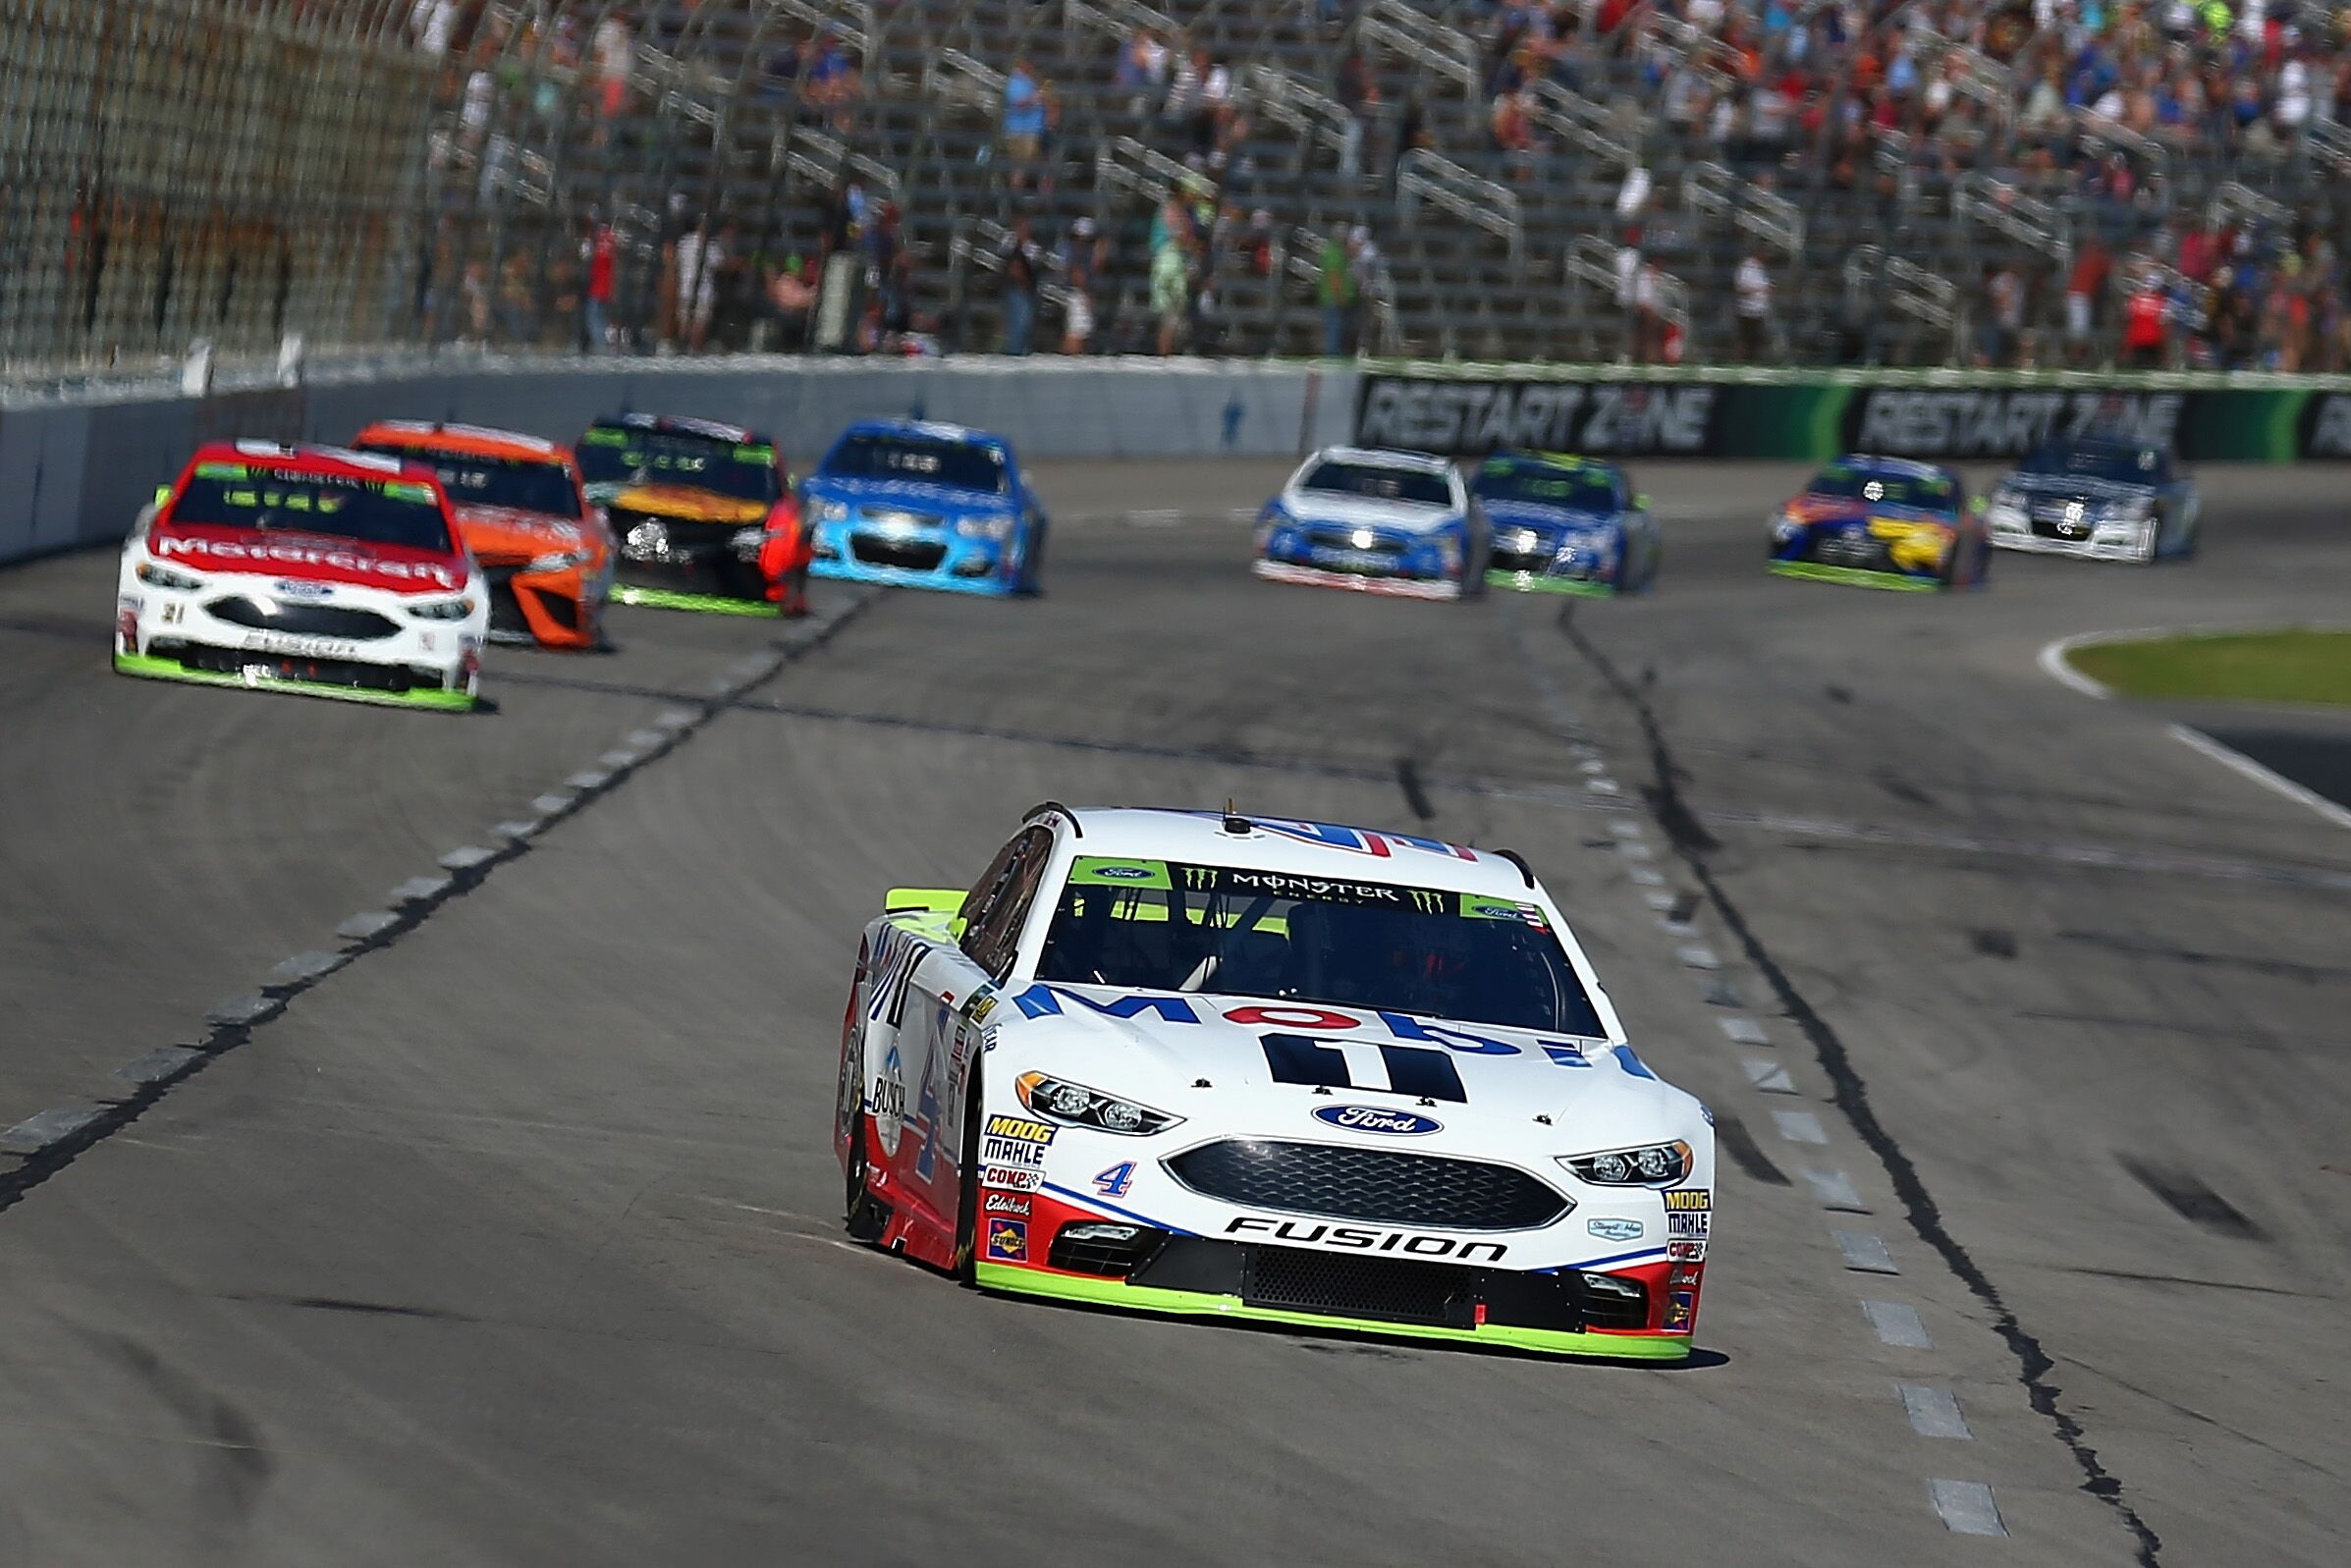 case 8 nascar racing teams update Shop for 1:64 scale diecast cars at the nascarcom shop 1:64 scale diecast drivers racing teams stewart-haas racing.